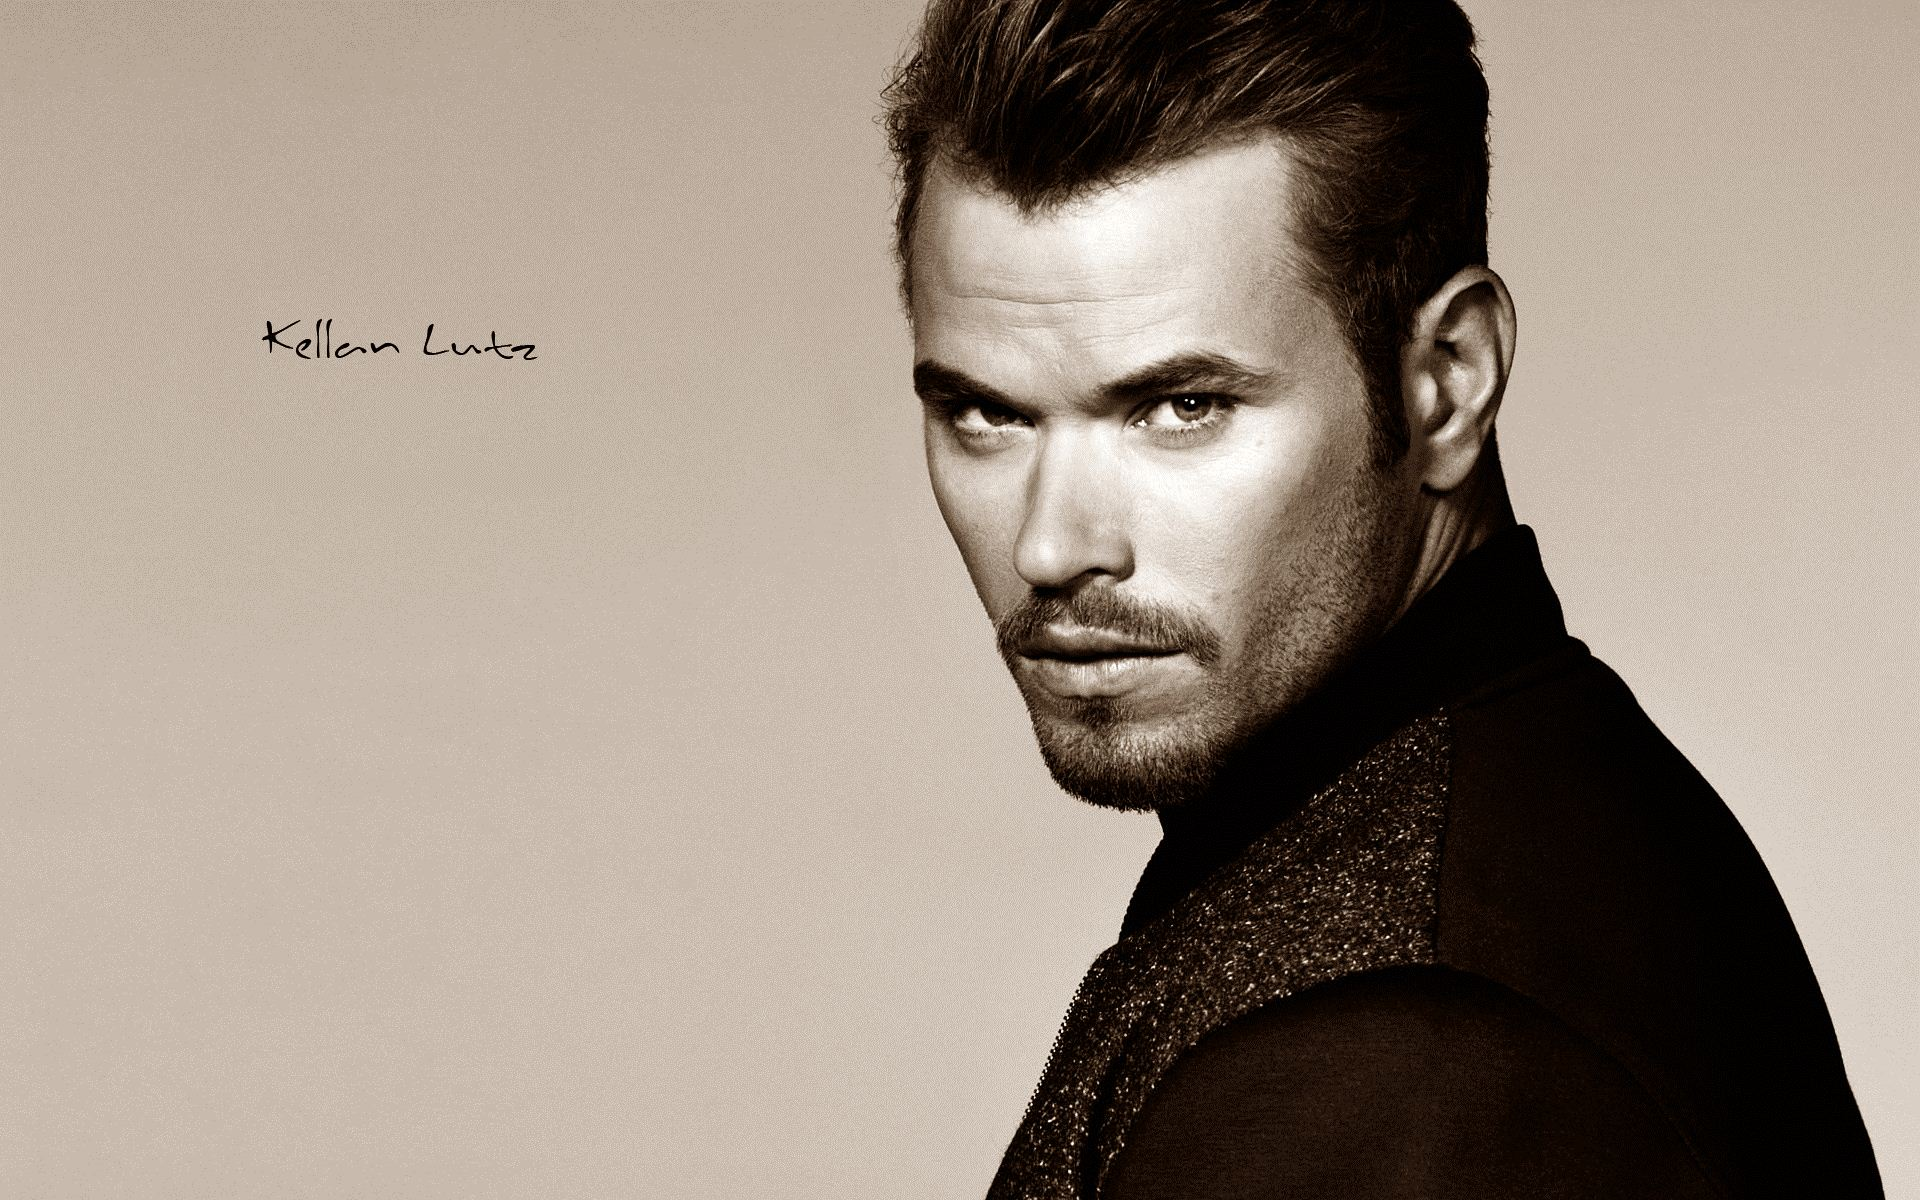 Kellan Lutz HQ wallpapers